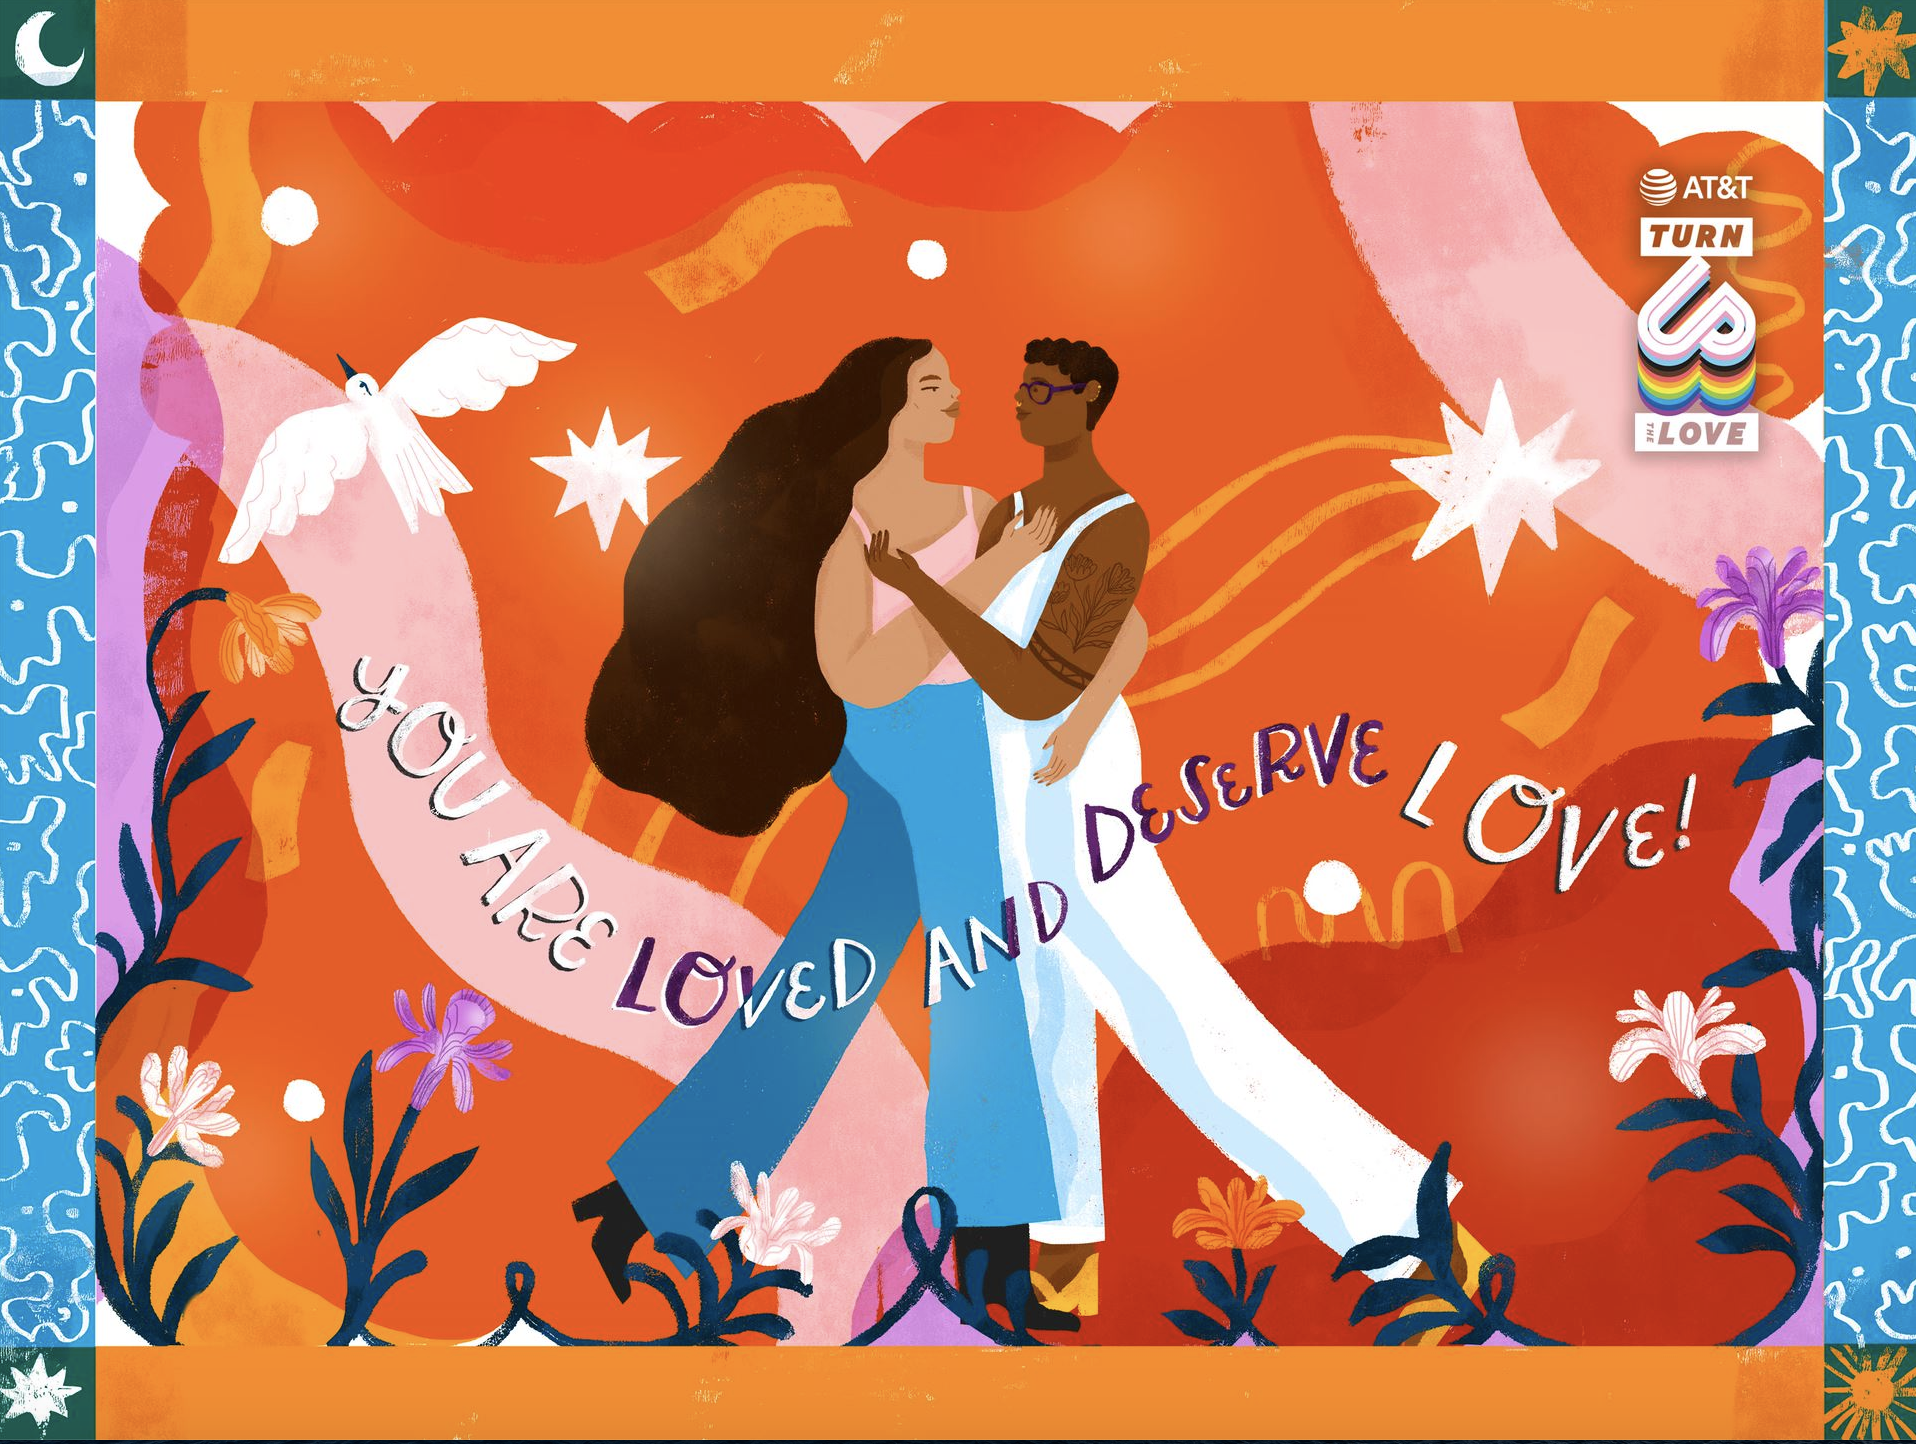 AT&T and Loveis Wise share the message, you are loved and deserve love.